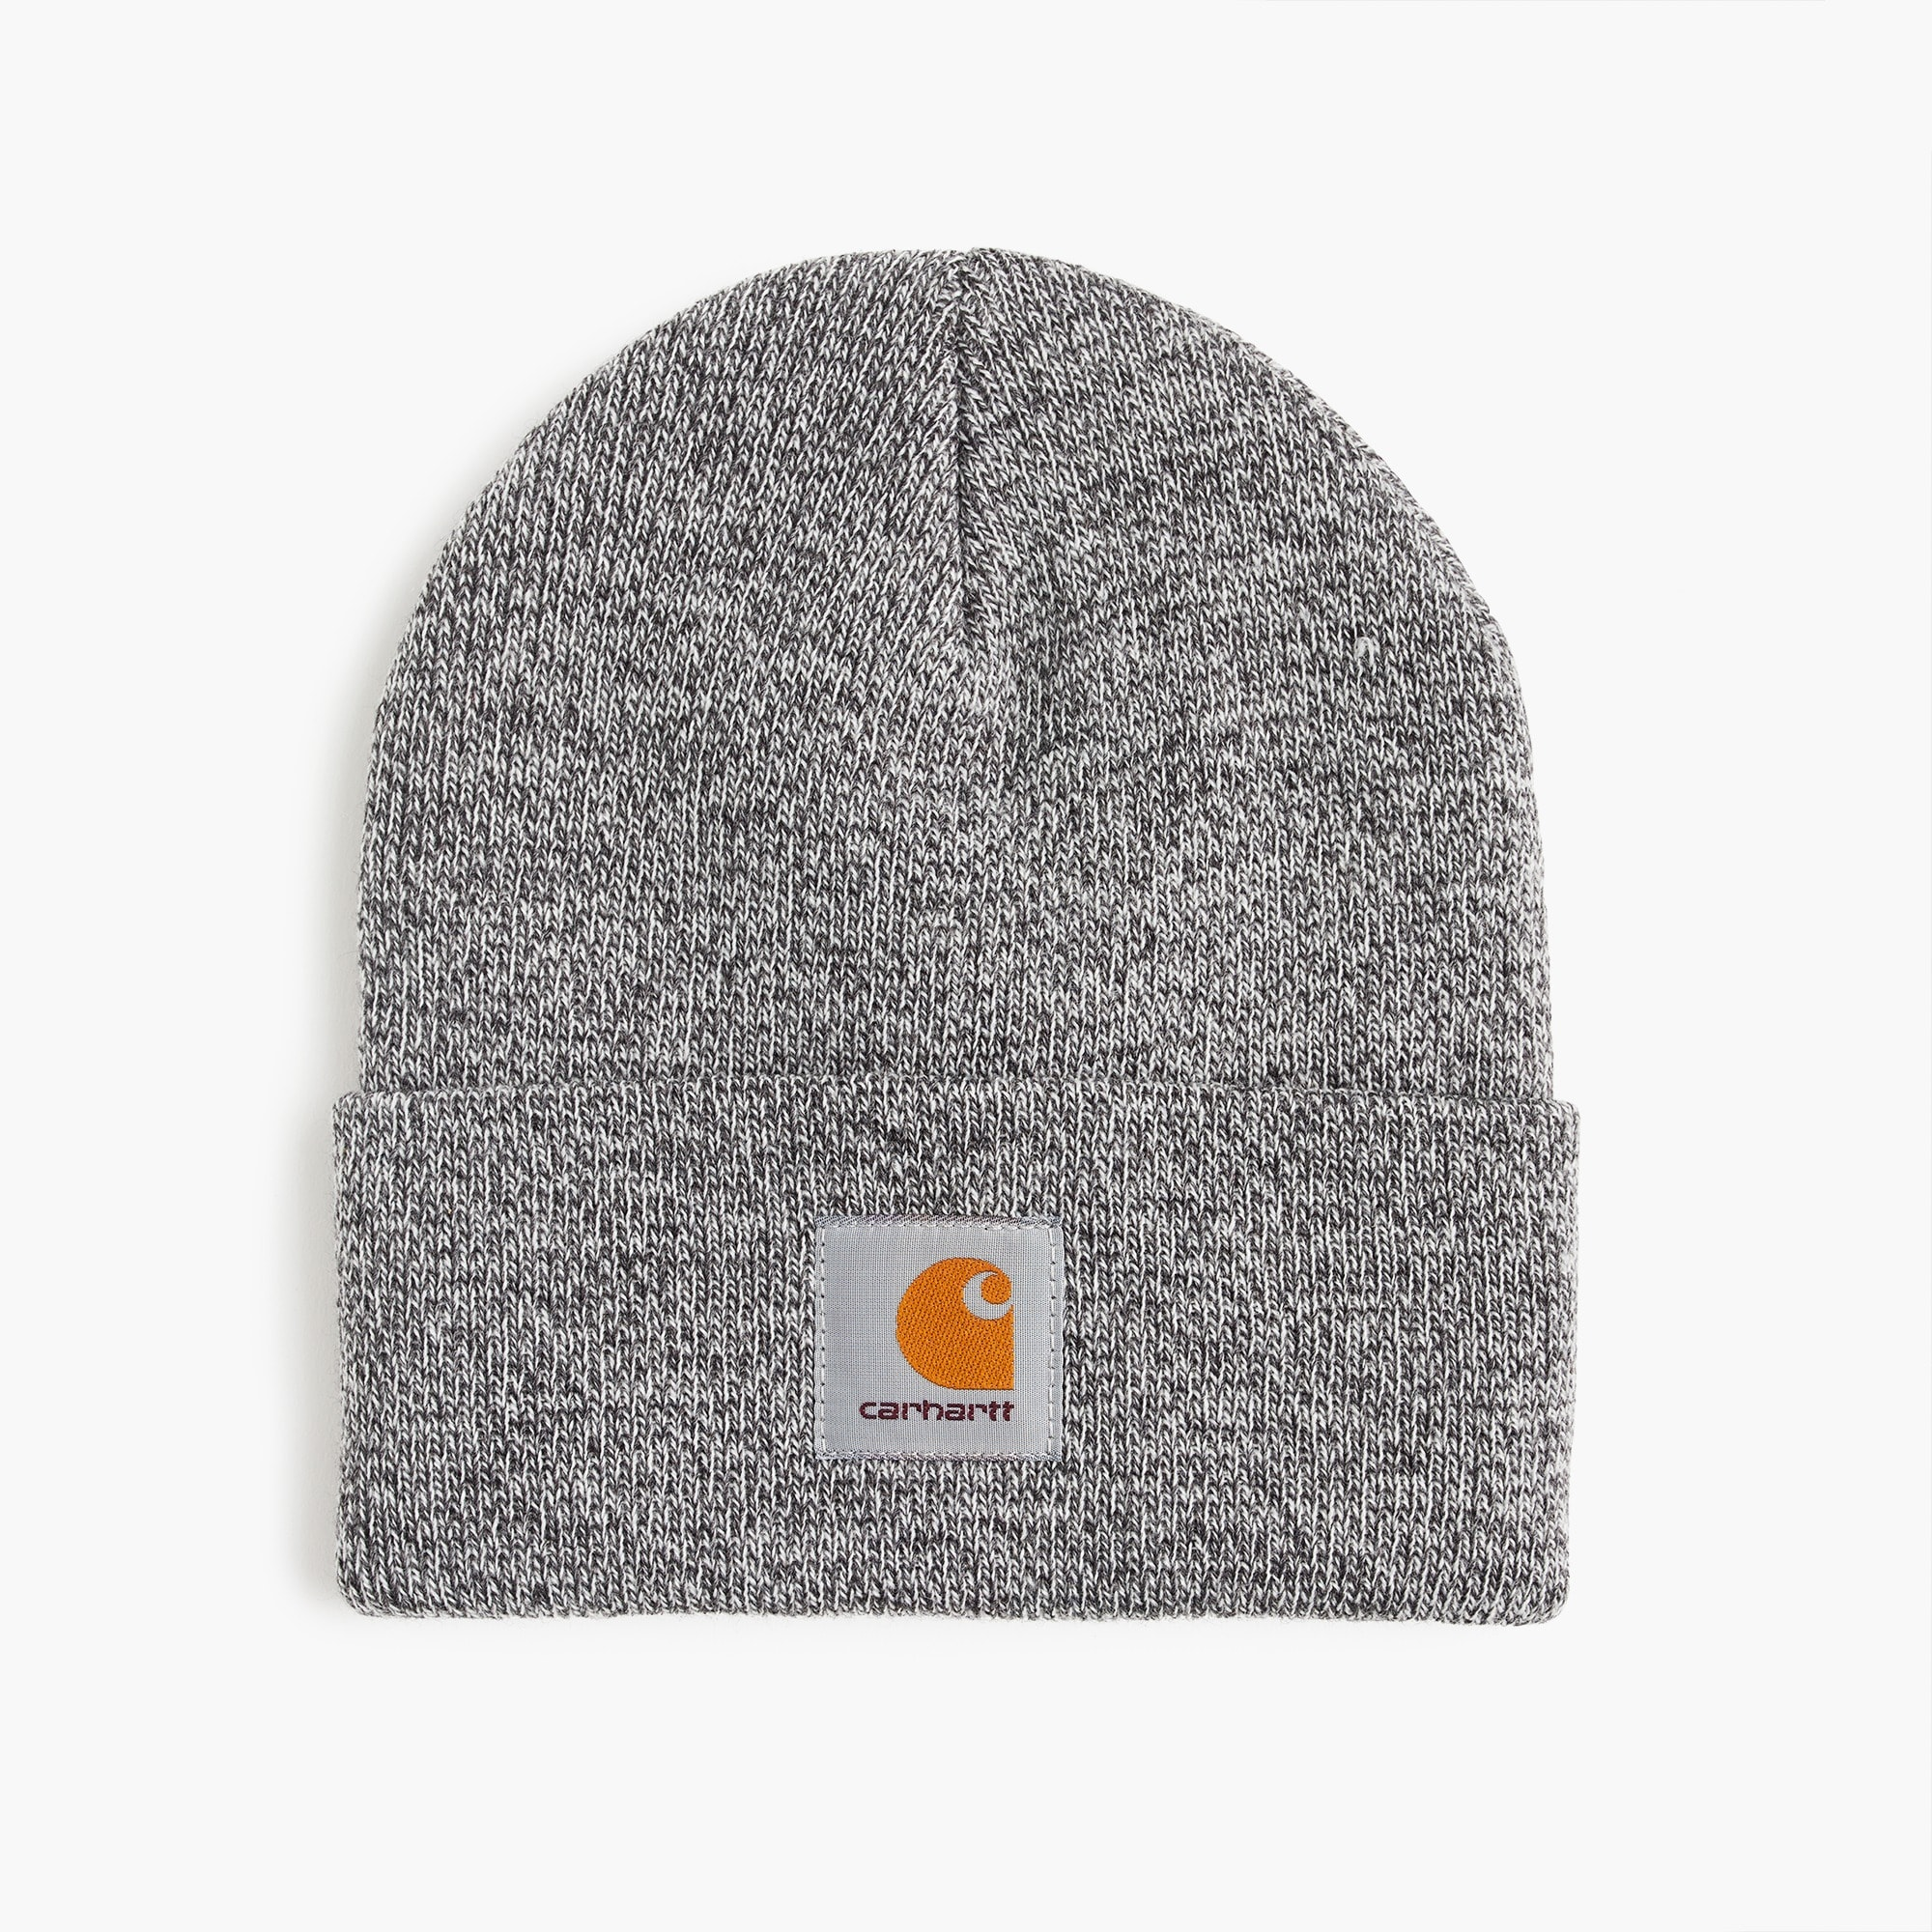 Carhartt® Work in Progress Watch hat